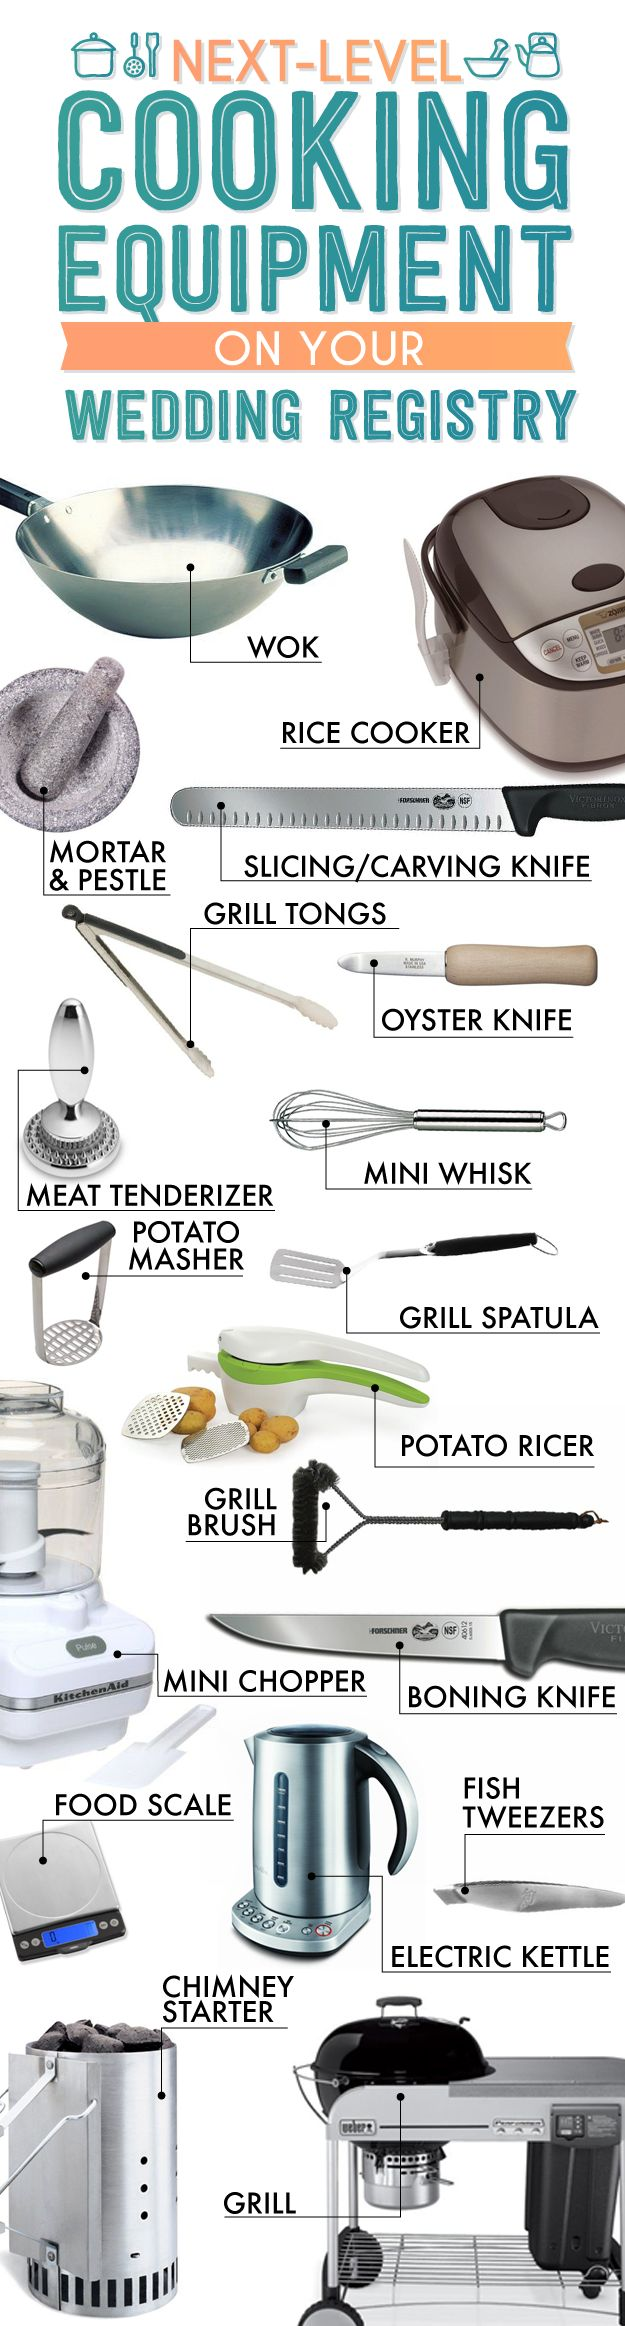 Uncategorized Basic Kitchen Appliances best 25 kitchen equipment list ideas on pinterest the essential wedding registry for your kitchen